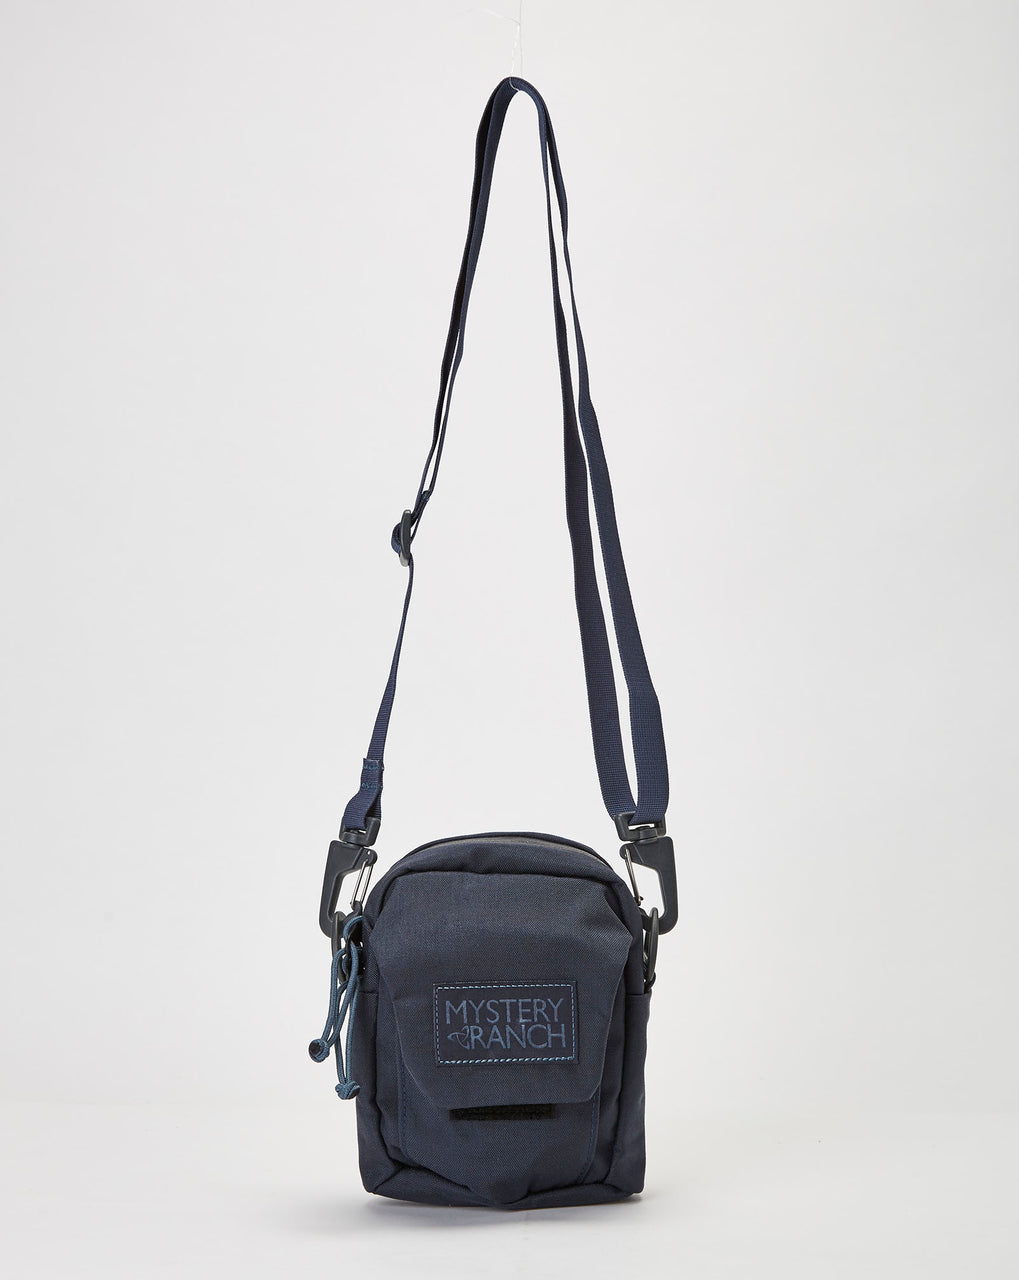 Mystery Ranch Bop Mini Shoulder Bag (Galaxy)